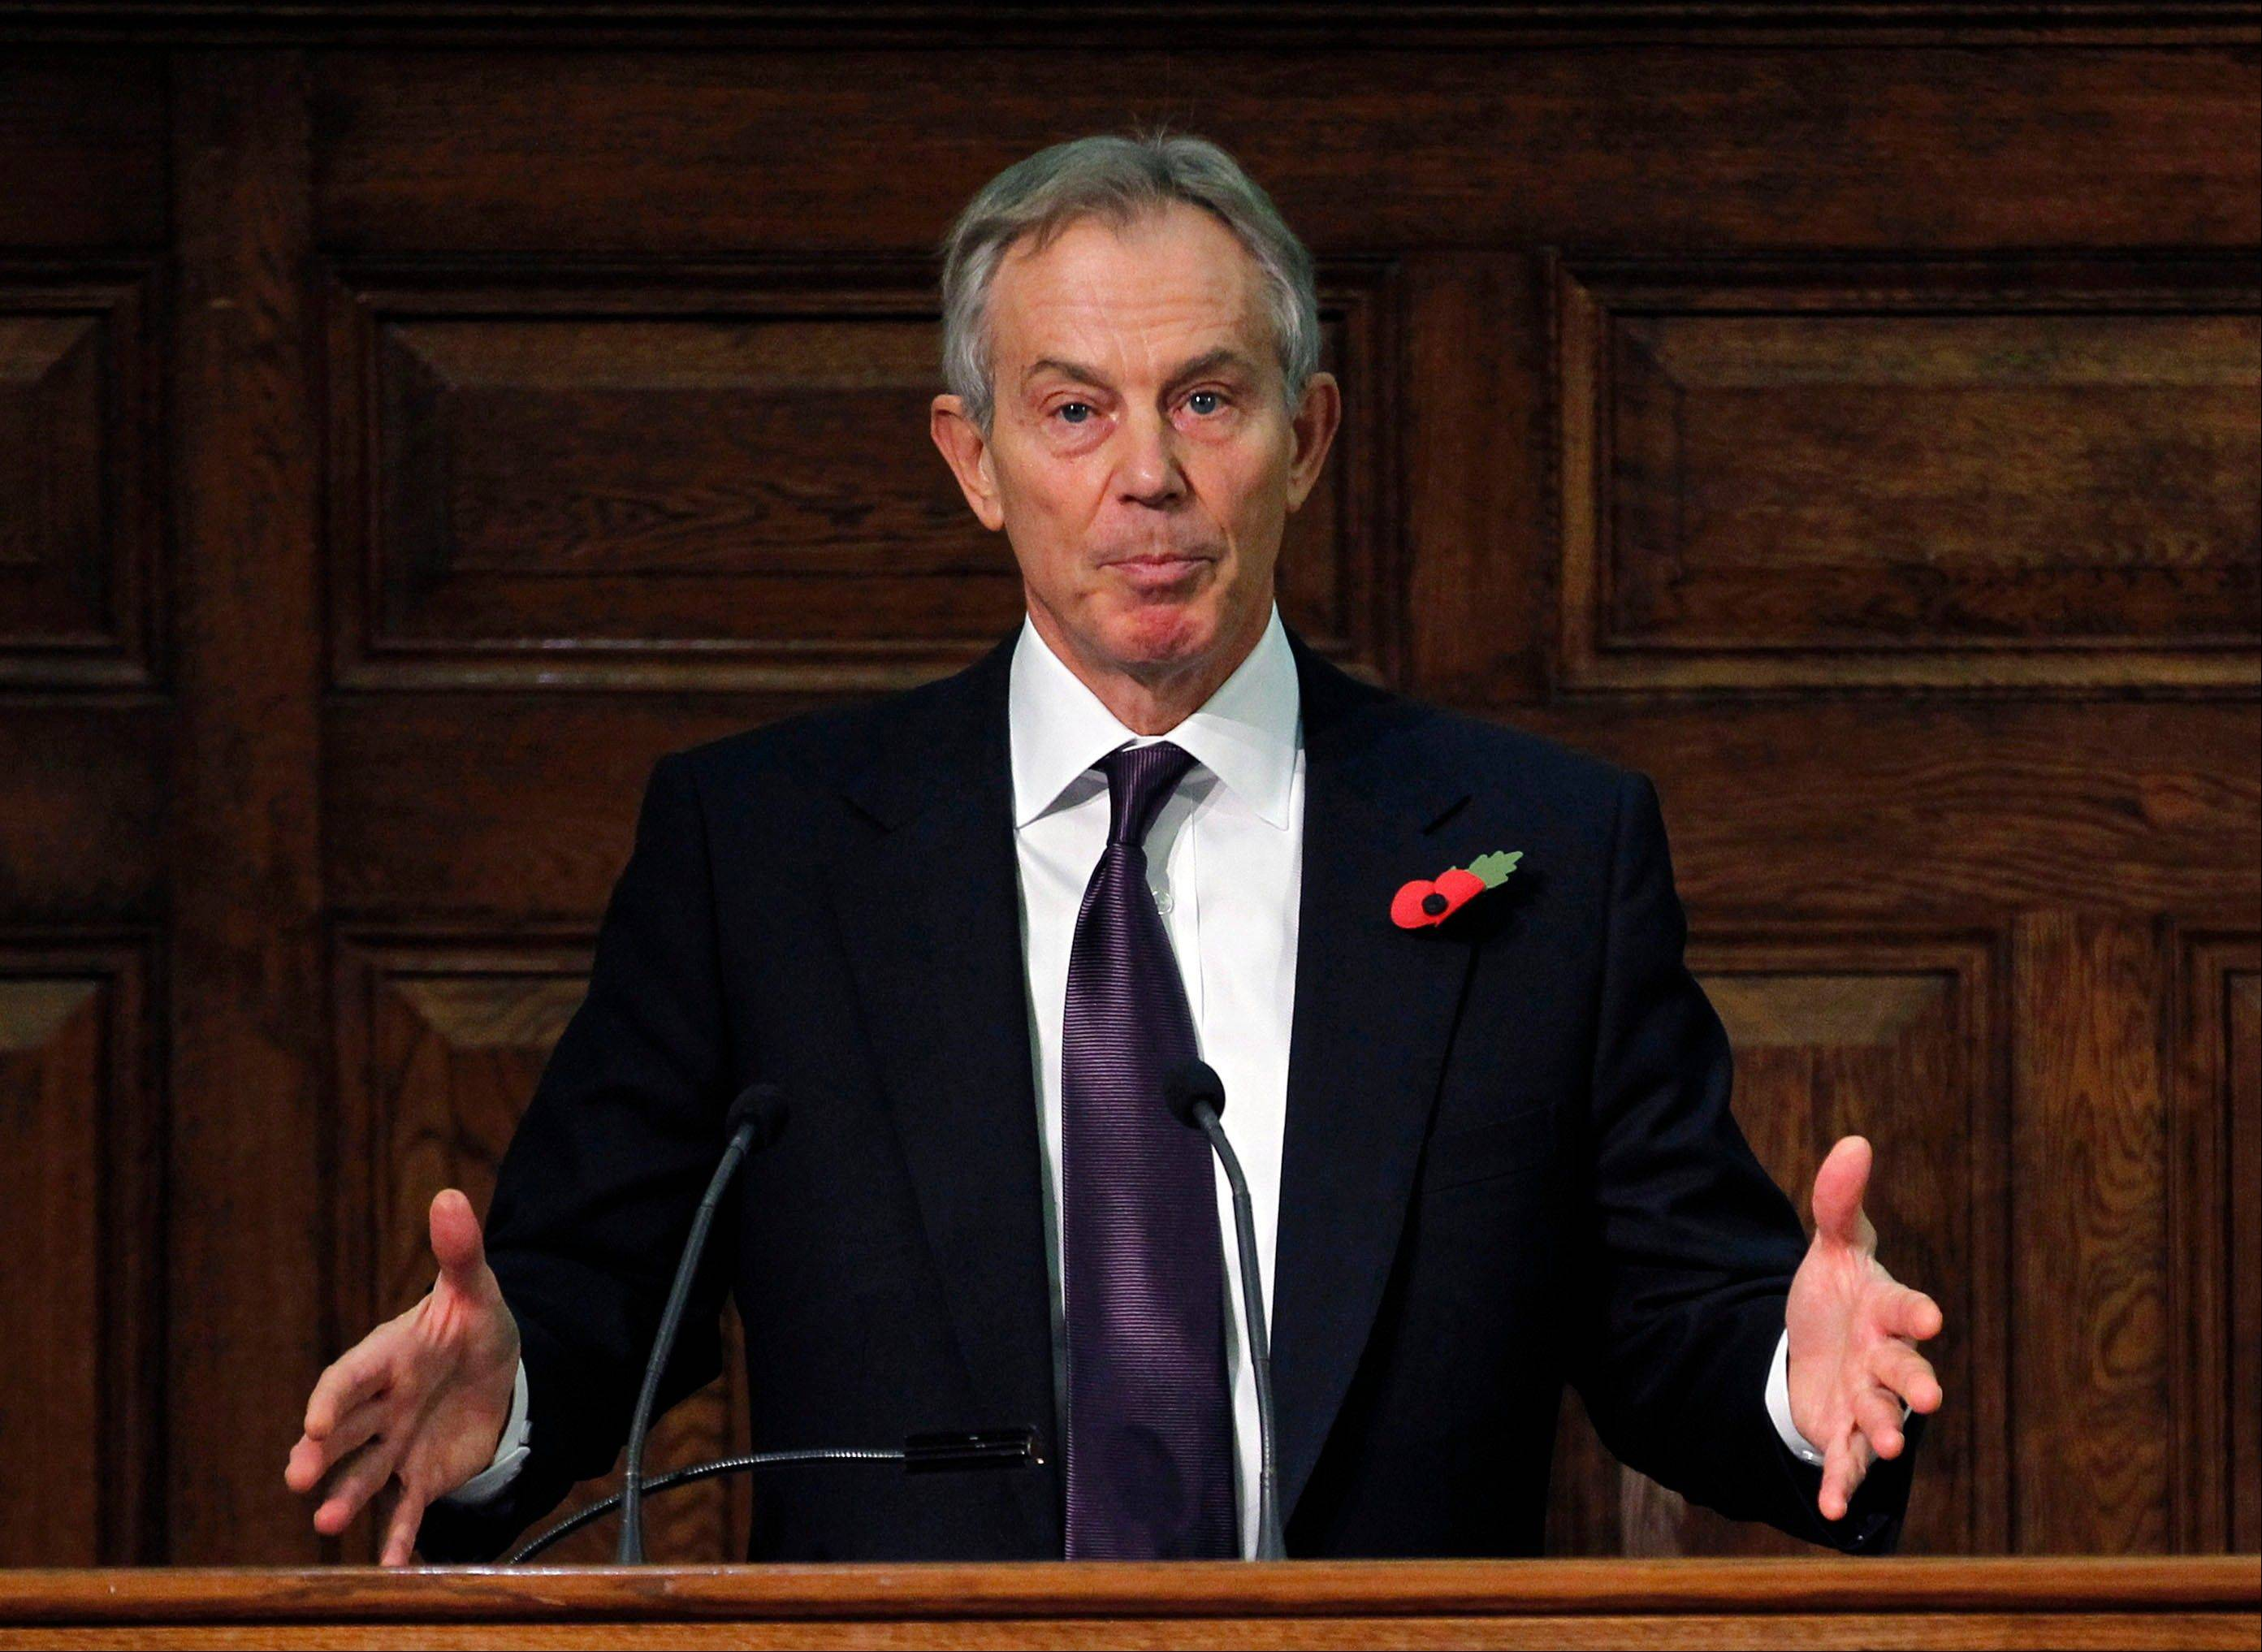 Former British Prime Minister Tony Blair addresses the delegates at the Iraq Britain Business Council annual conference in central London in November. Blair will be in Elgin to speak at Judson University in April.